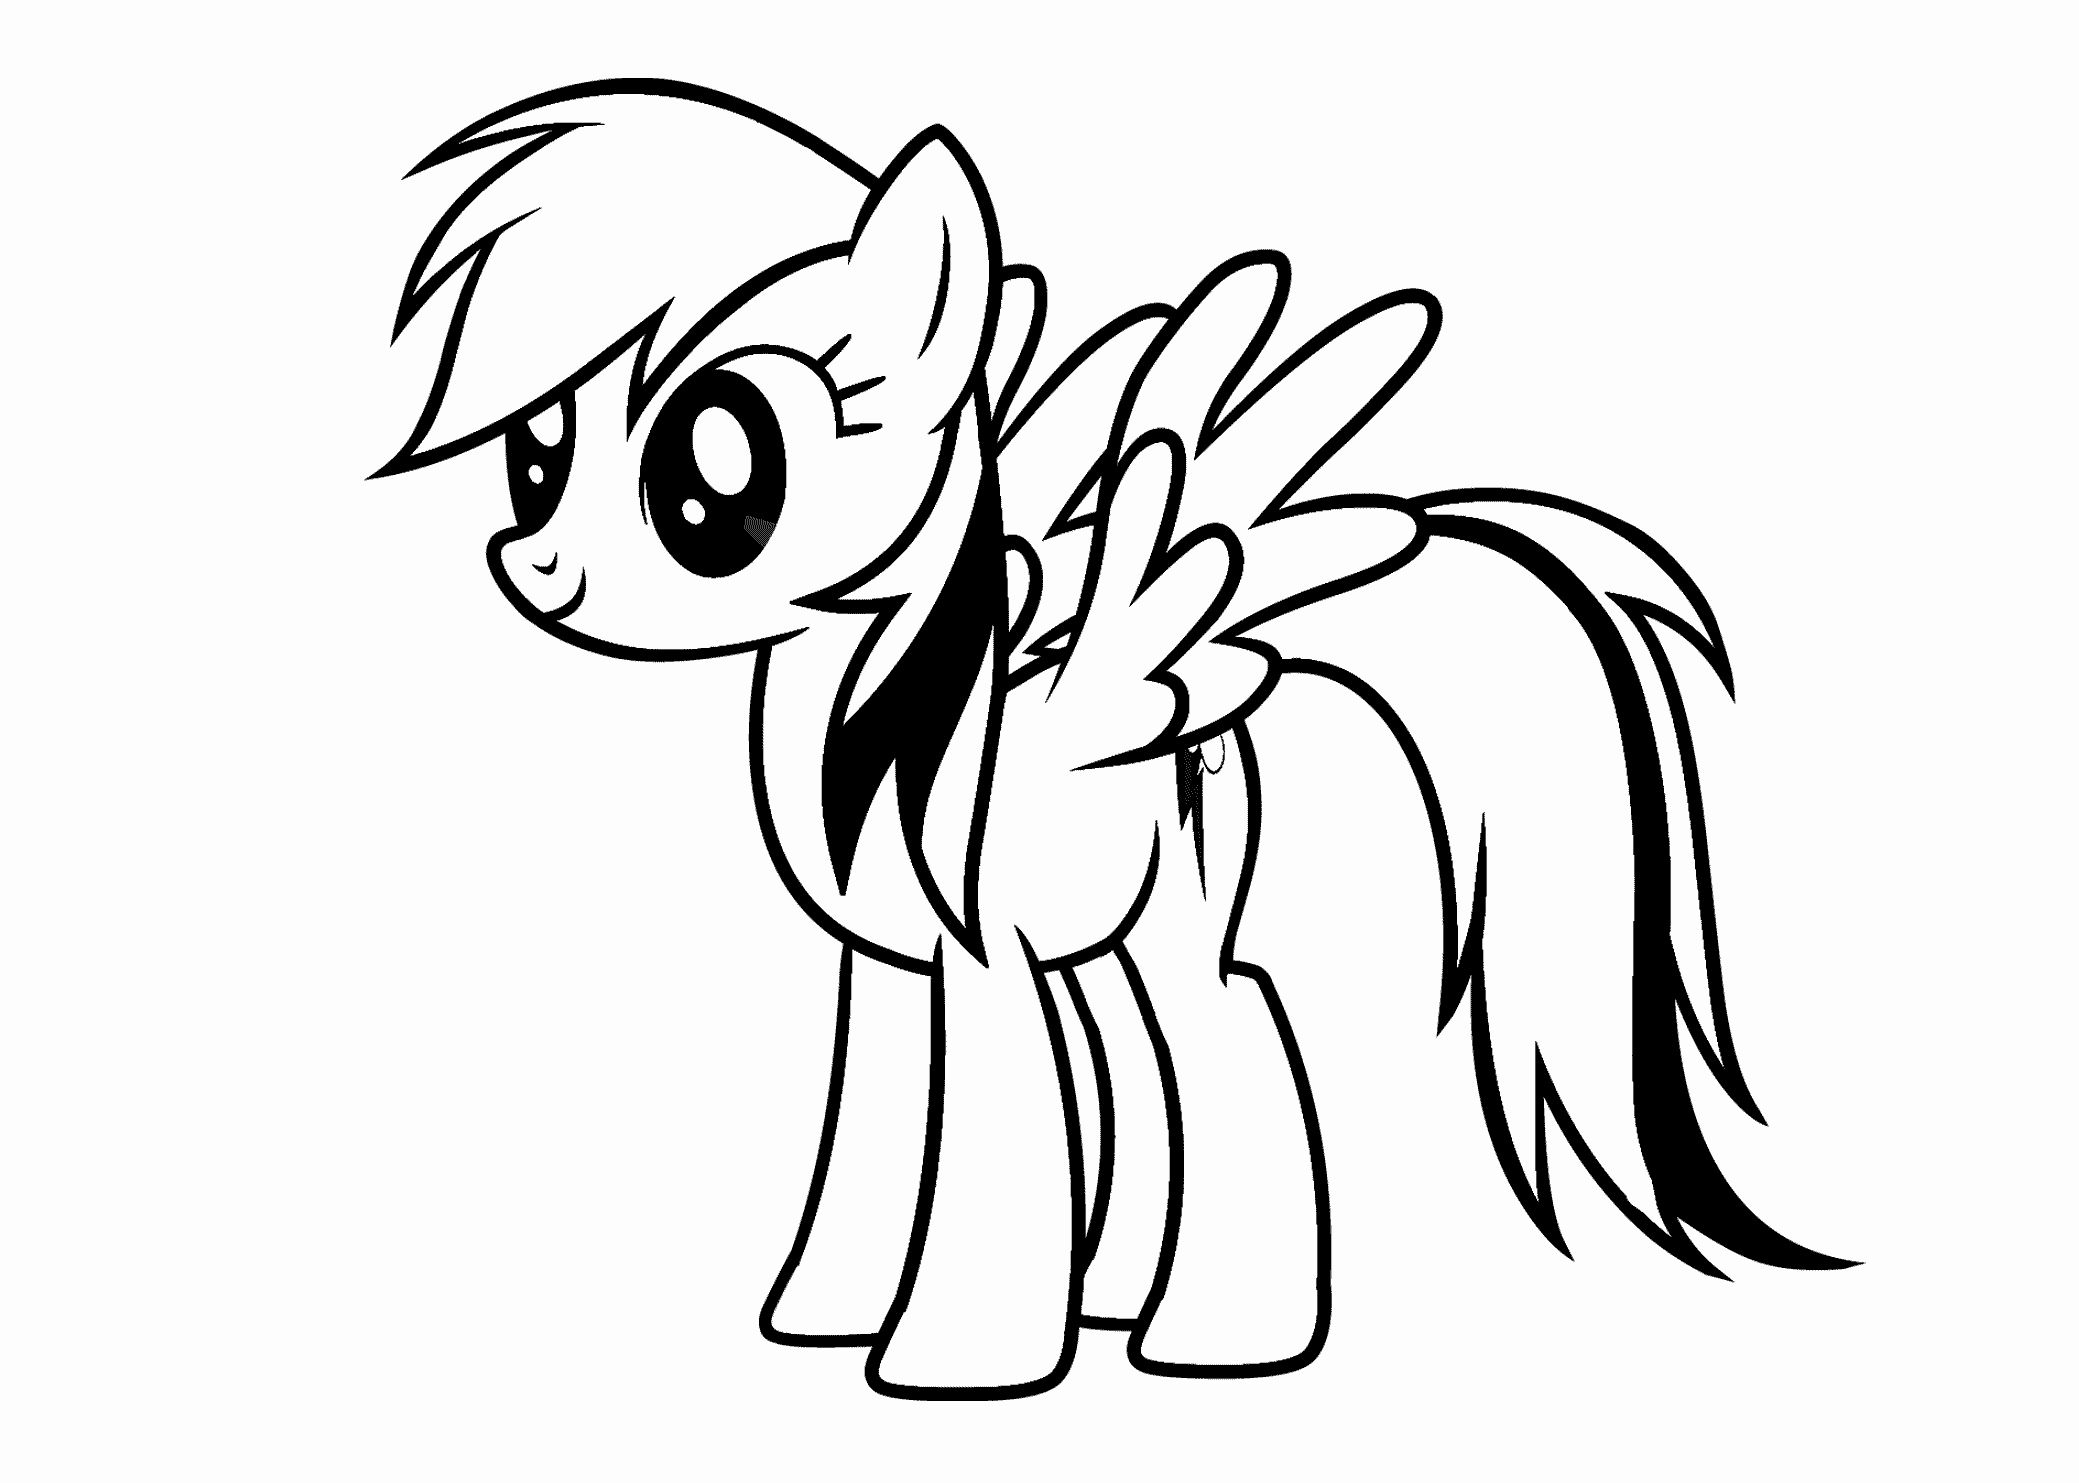 Rainbow Dash Coloring Page Awesome My Little Pony Rainbow Dash Coloring Pages For Kids Printable Free Color My Little Pony Coloring My Little Pony Cartoon Pony